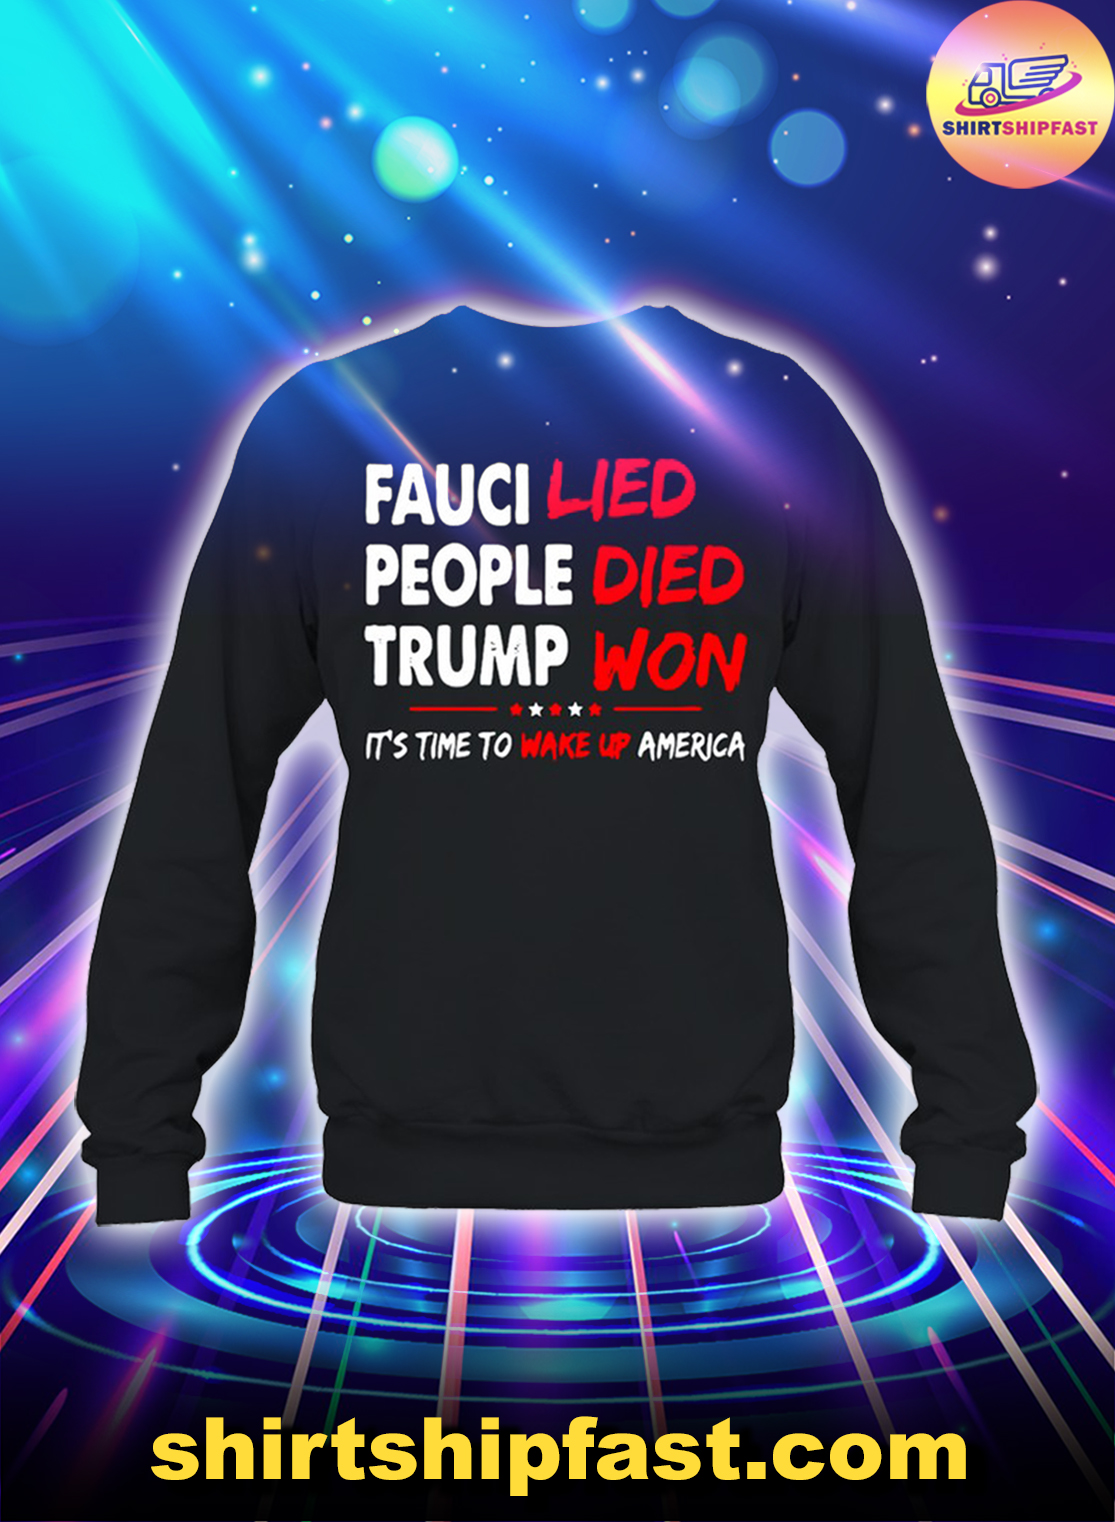 Fauci lied people died Trump won It's time to wake up America sweatshirt